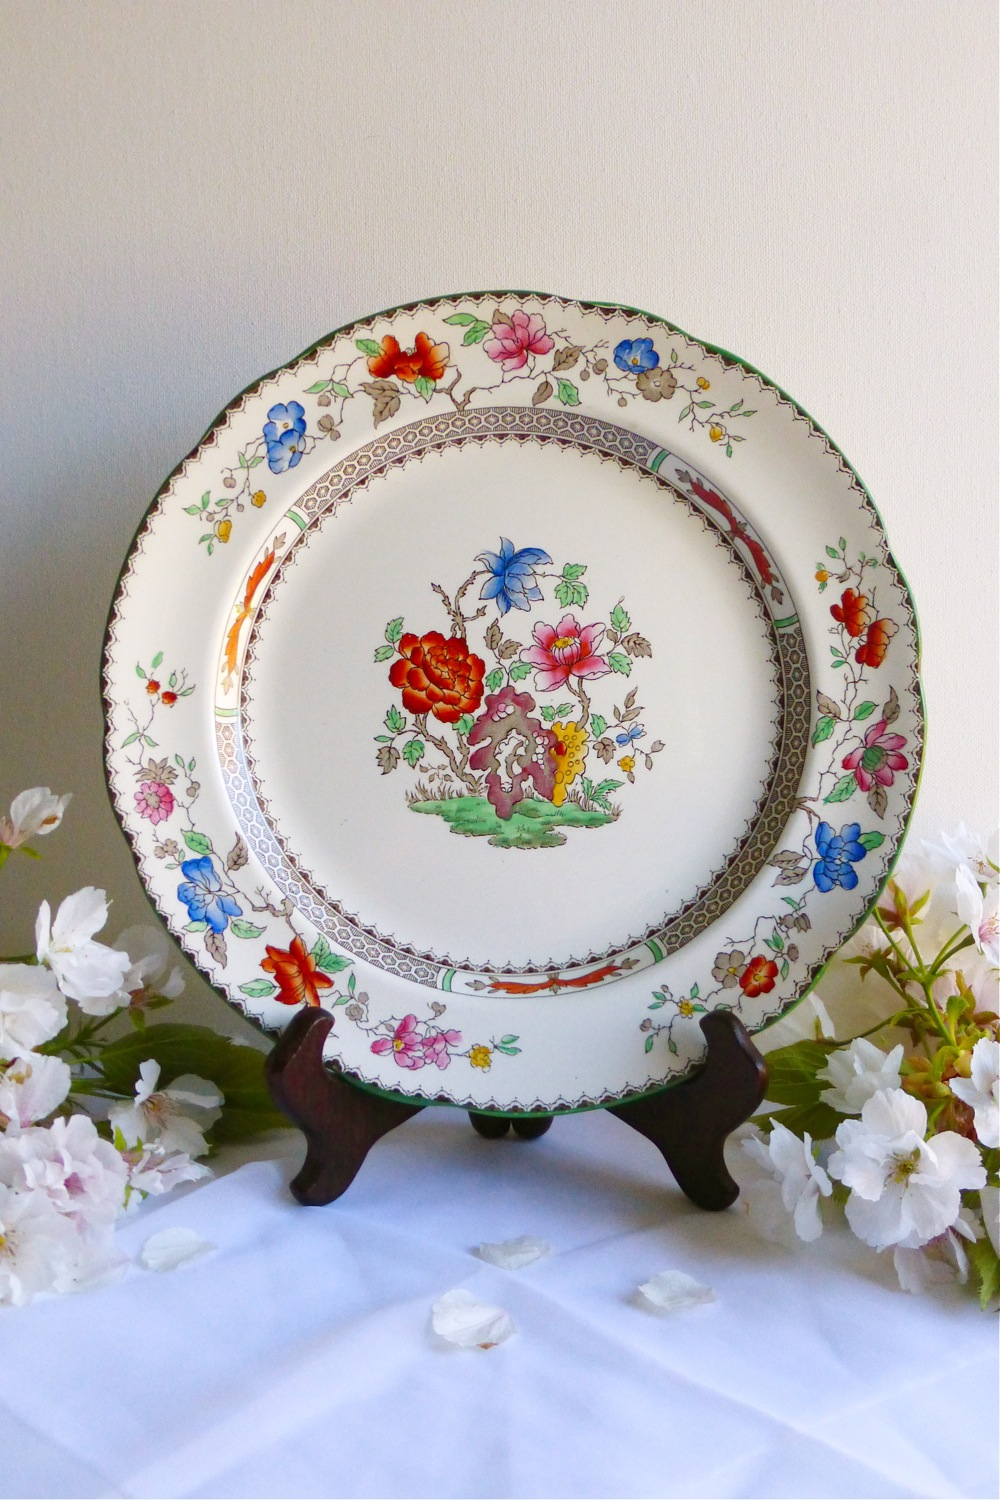 Copeland Spode Chinese Rose dinner plate, antique Copeland Spode plate, Copeland Spode chinoiserie style plate, Copeland Spode chinoiserie revival decorative plate, English china, English Chinese style china